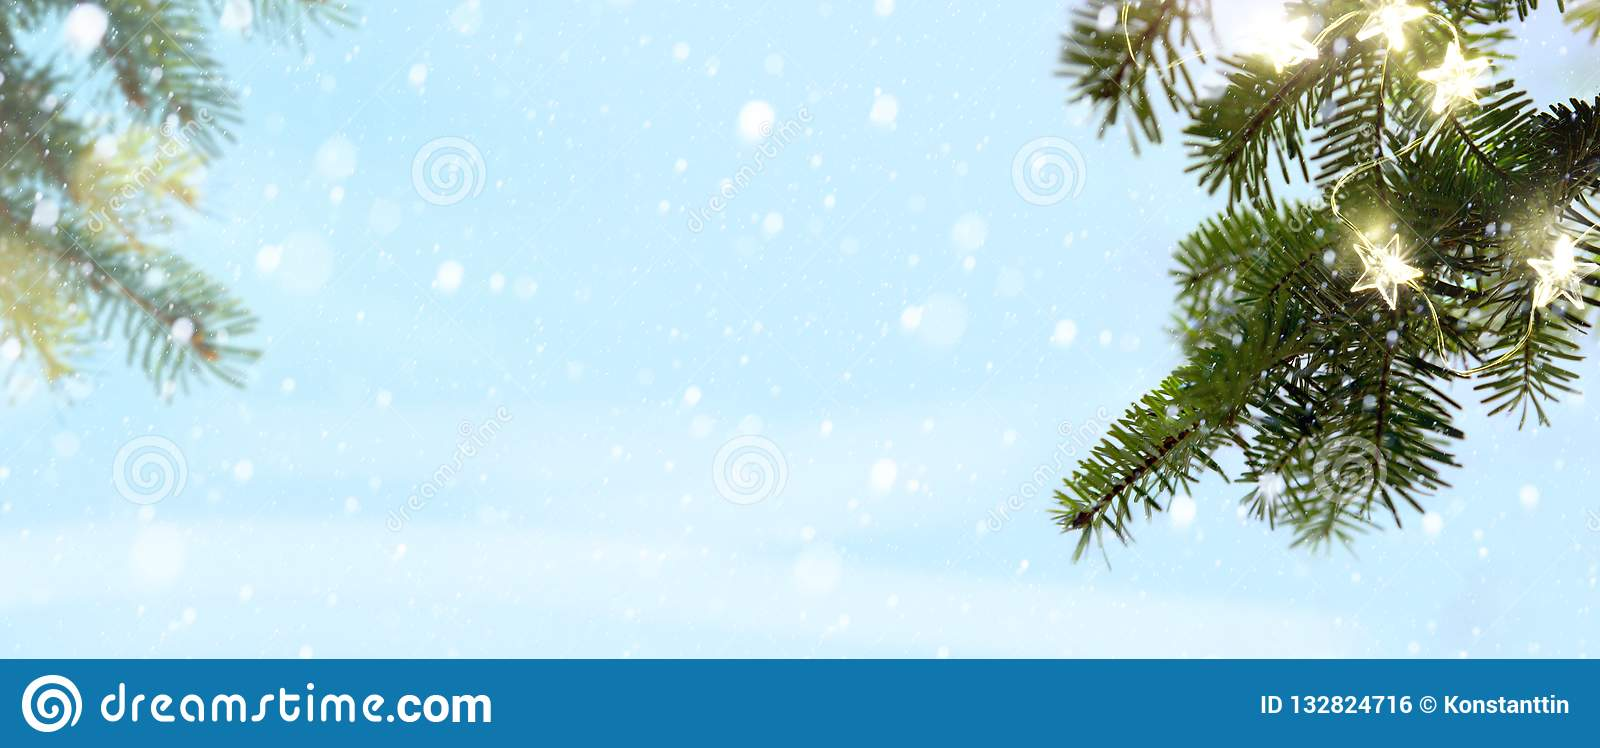 Merry Christmas - snow and fir tree branches with holidays light